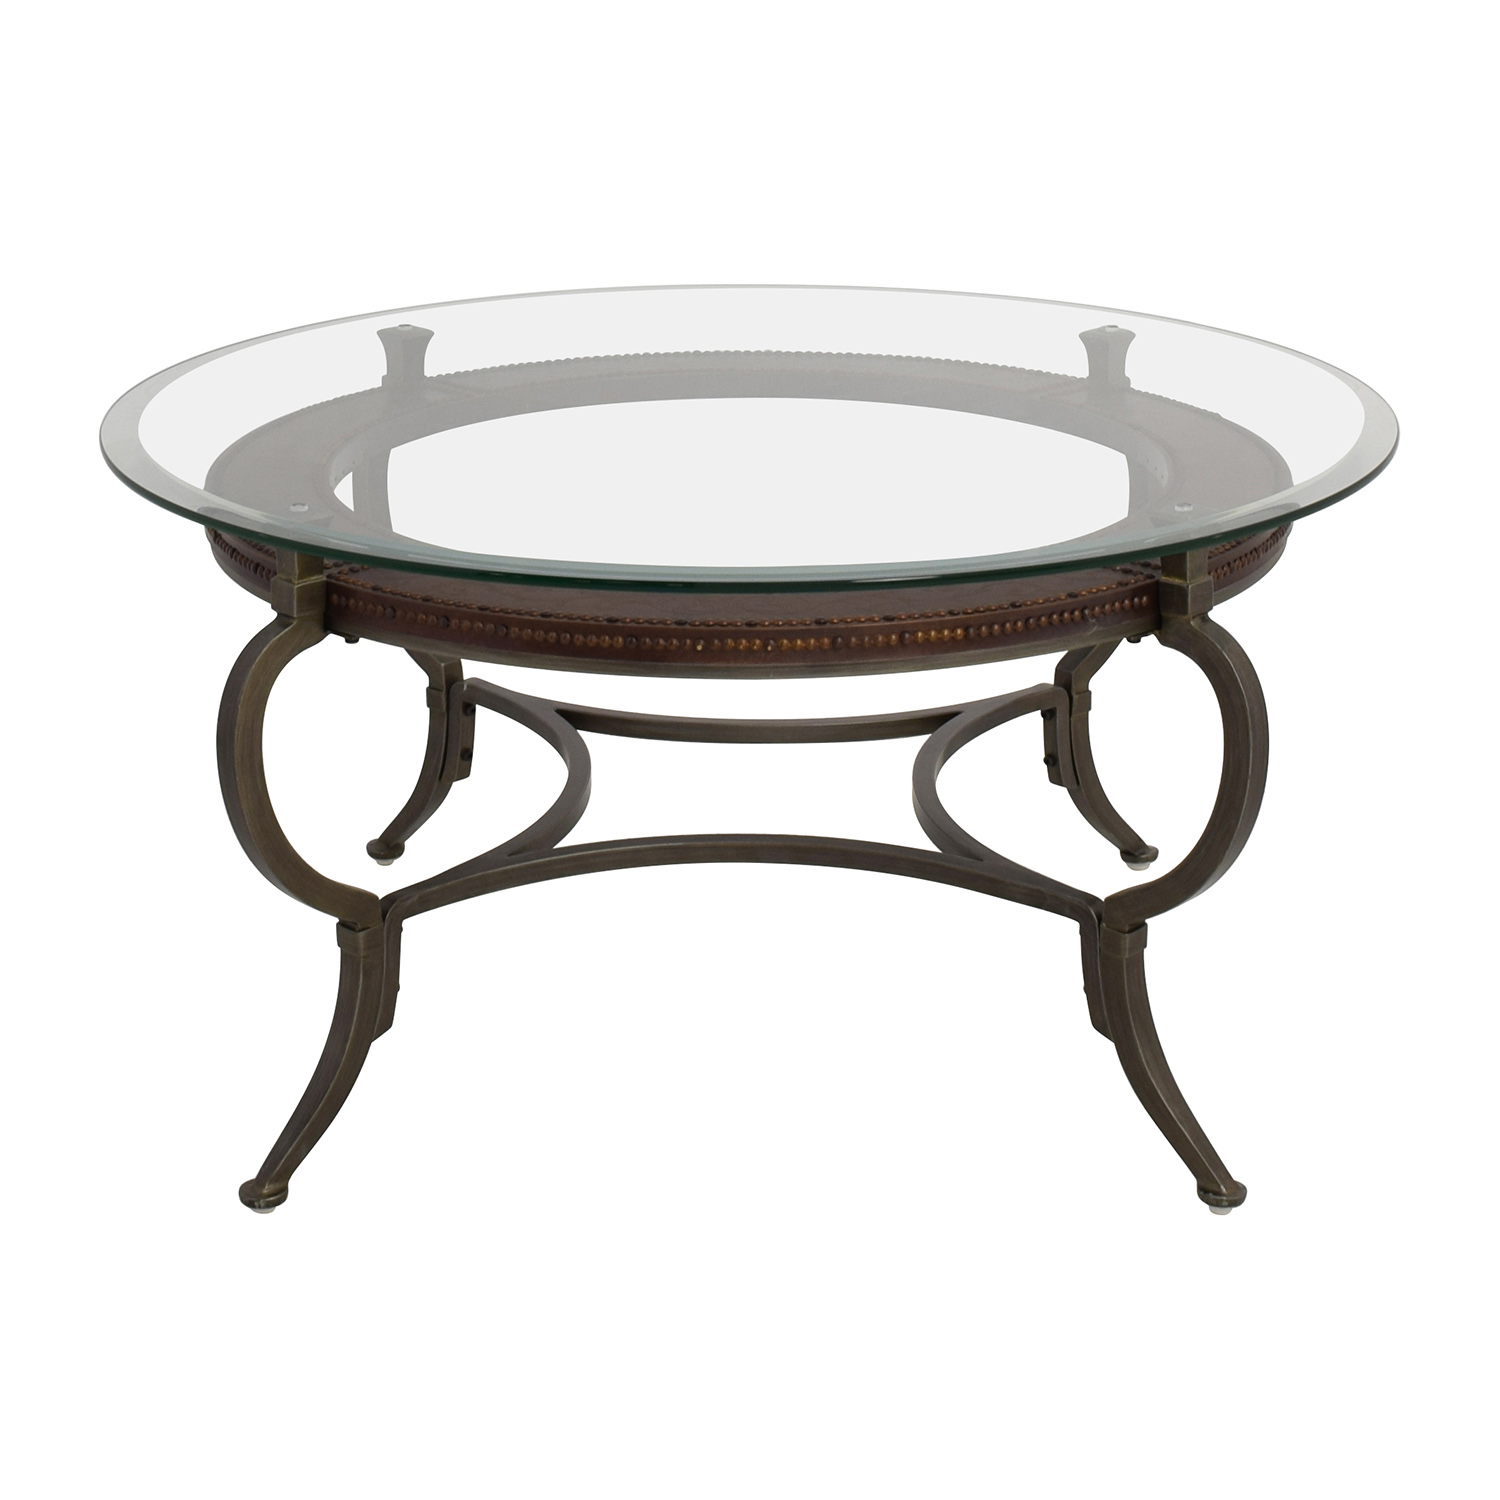 Macy's Macy's Round Metal and Glass Cocktail Table Brown - 62% OFF - Macys Macy's Glass And Wood Coffee Table / Tables